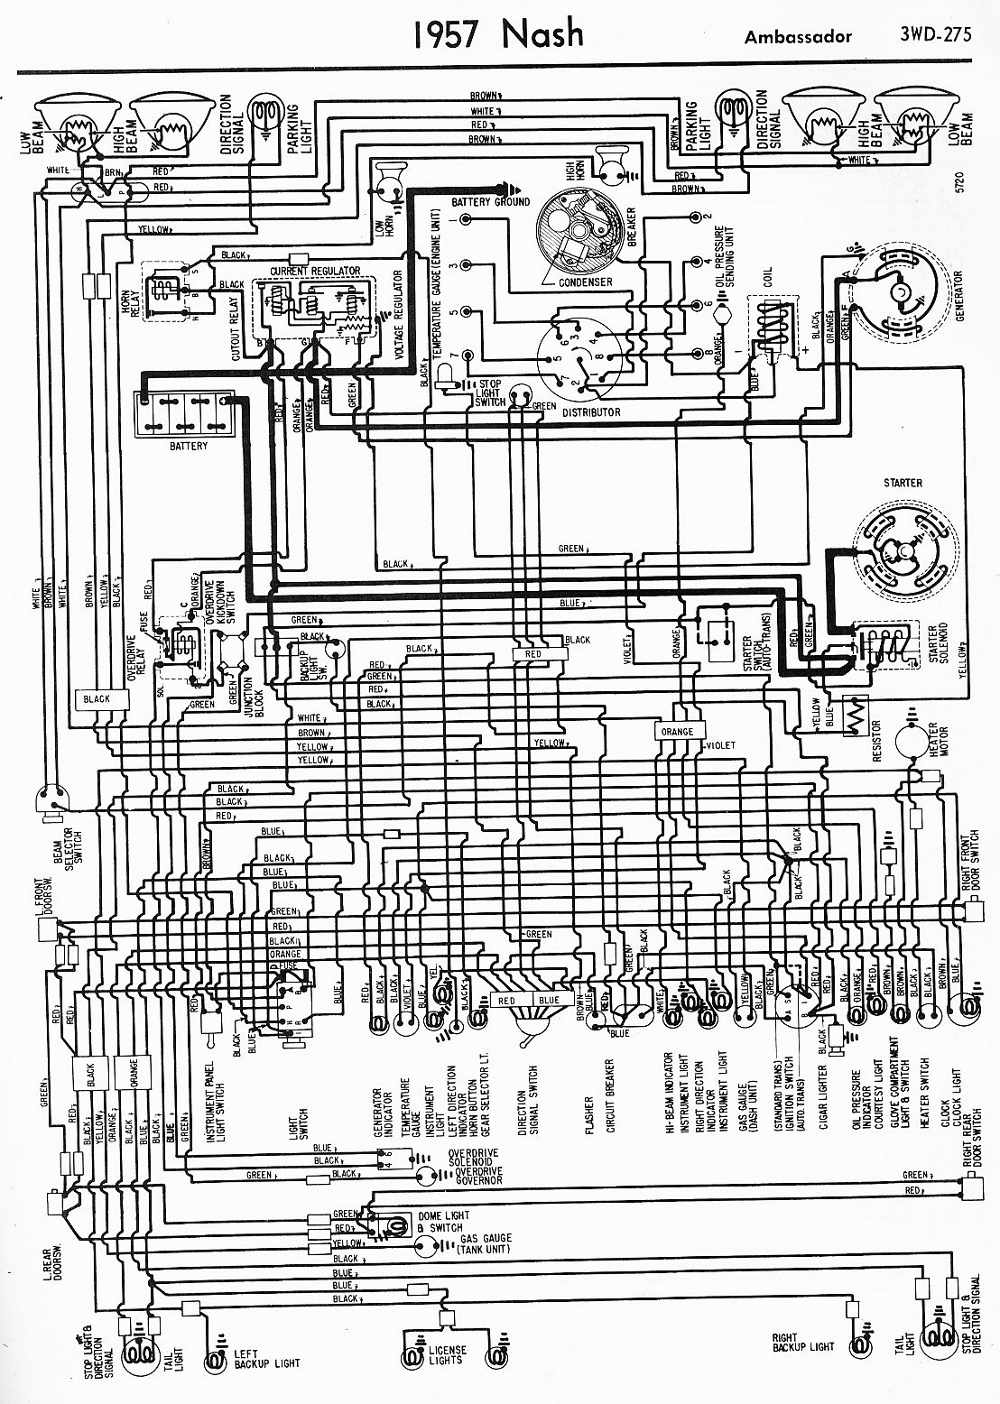 Diagrams Archives Page 94 Of 301 Automotive Wiring Schema Cars 57 Data